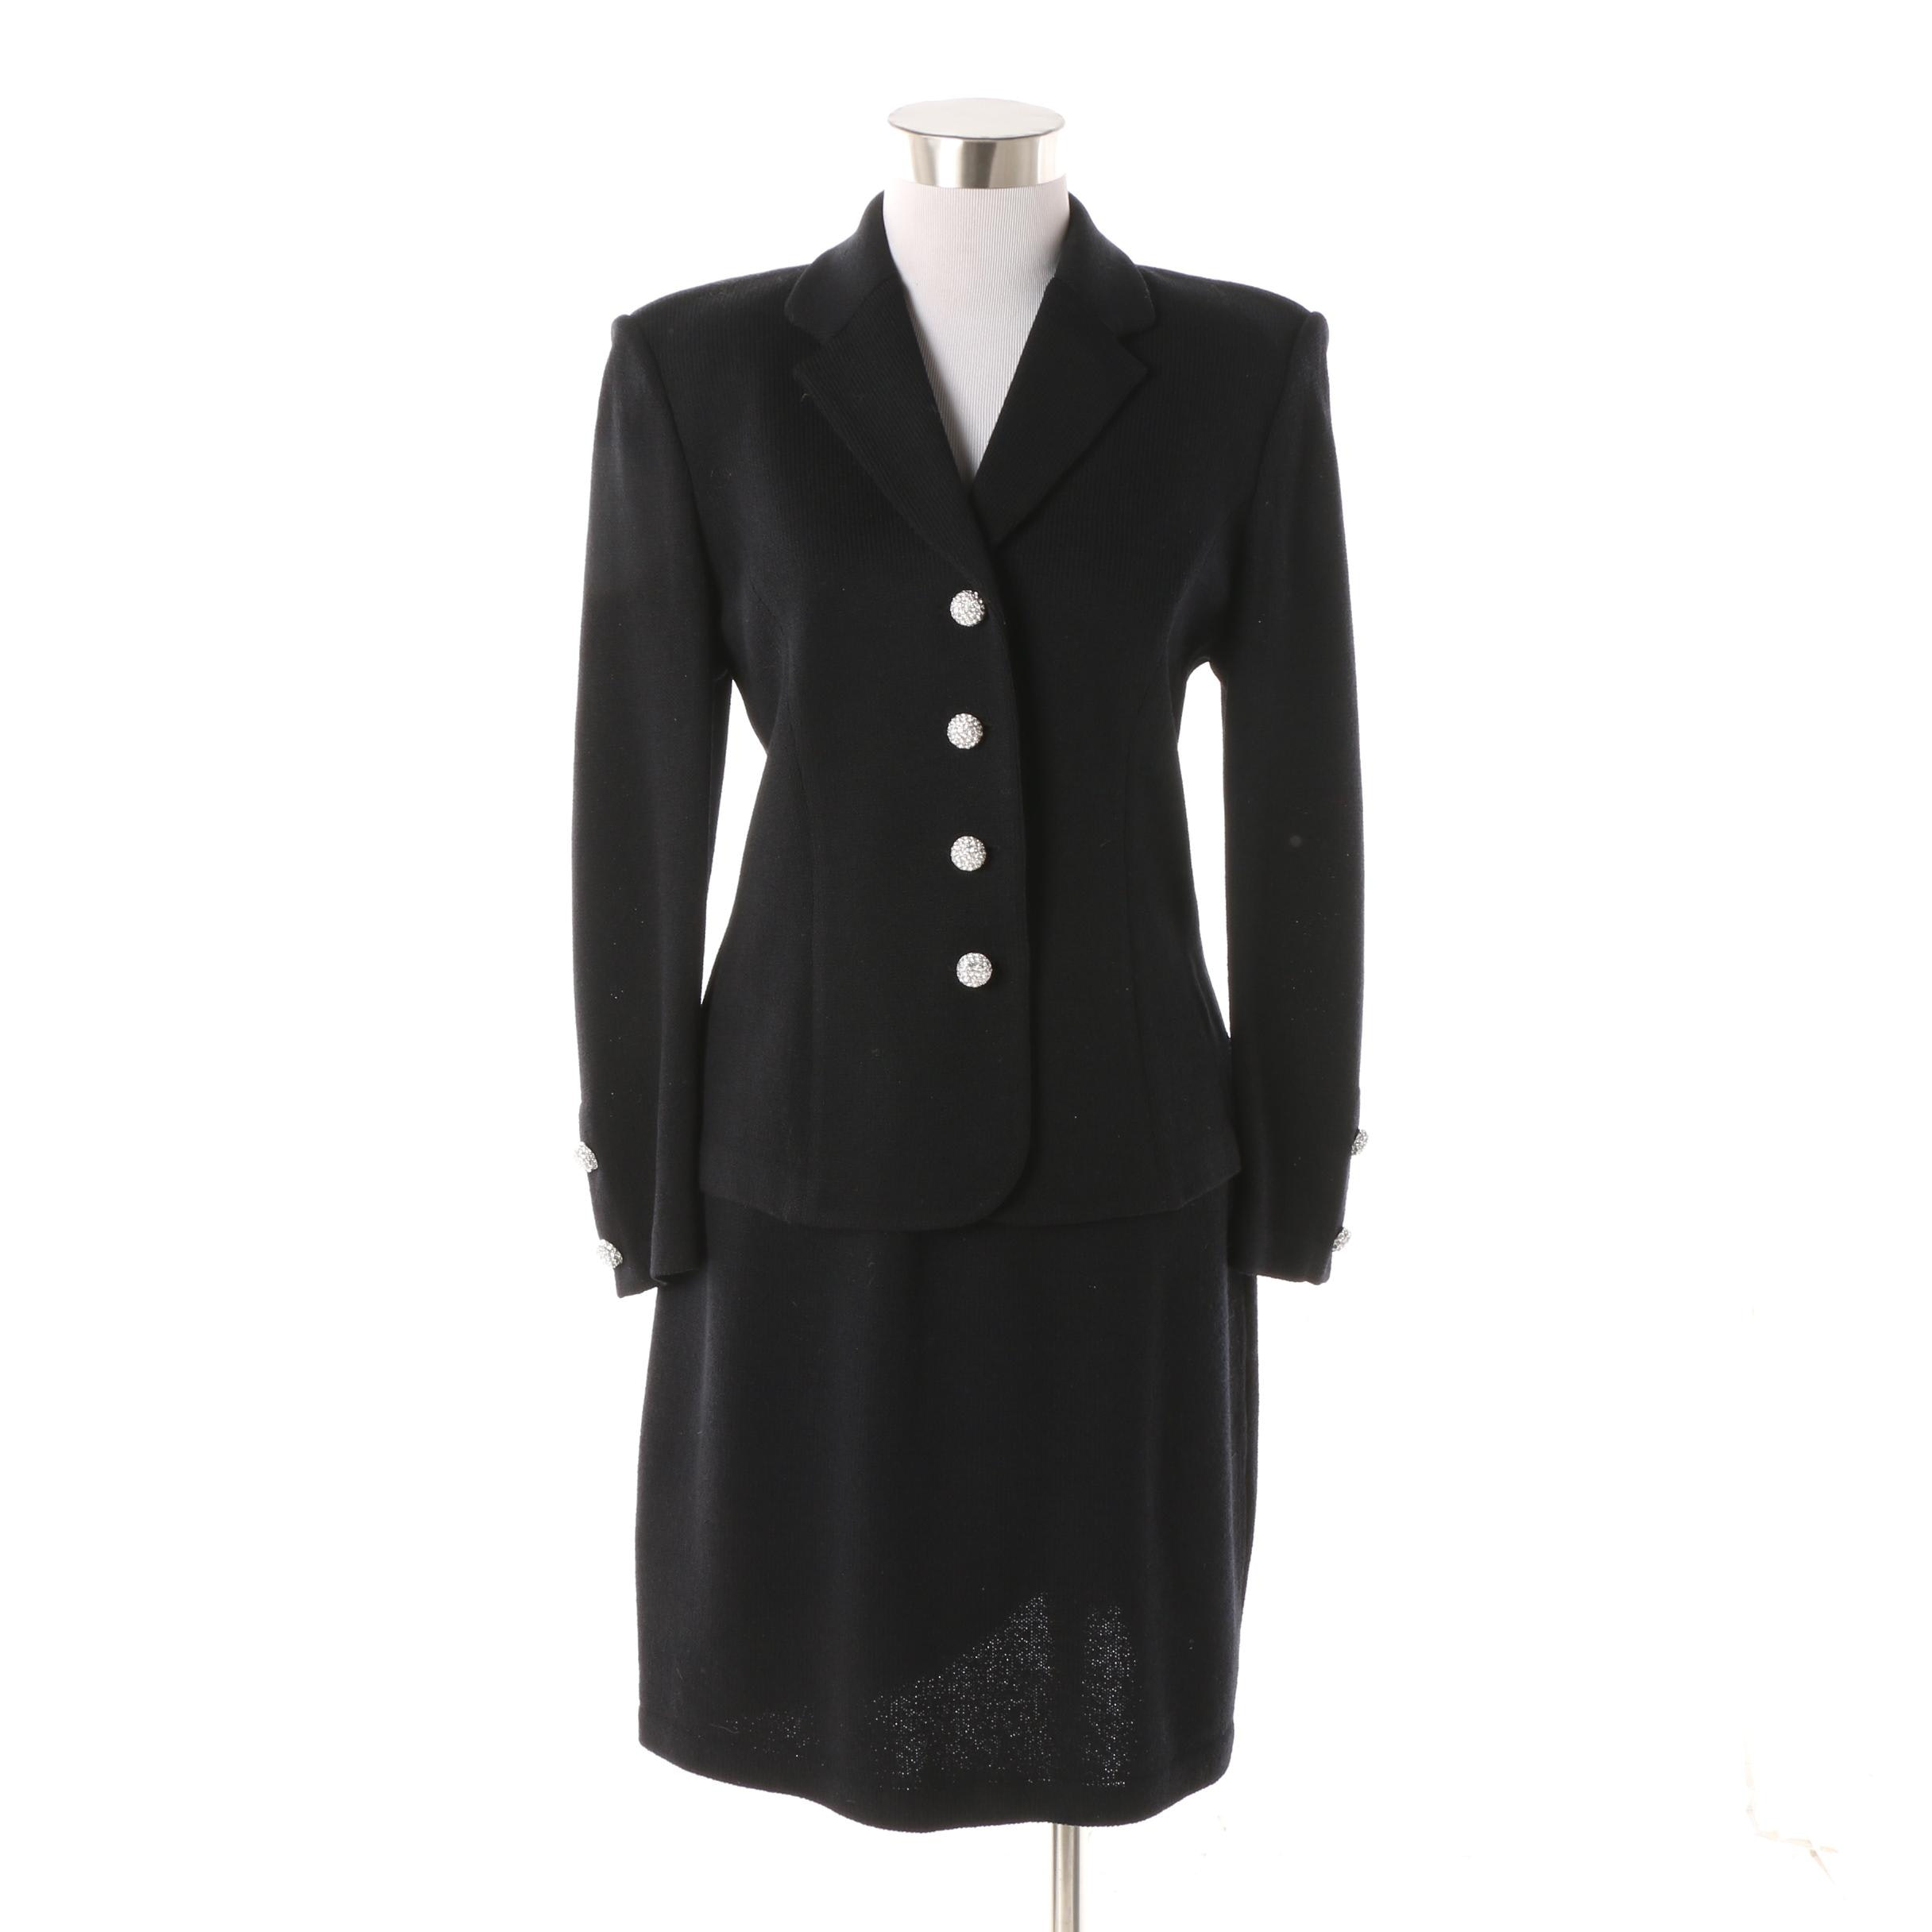 St. John Basics Black Knit Skirt Suit featuring Rhinestone Buttons